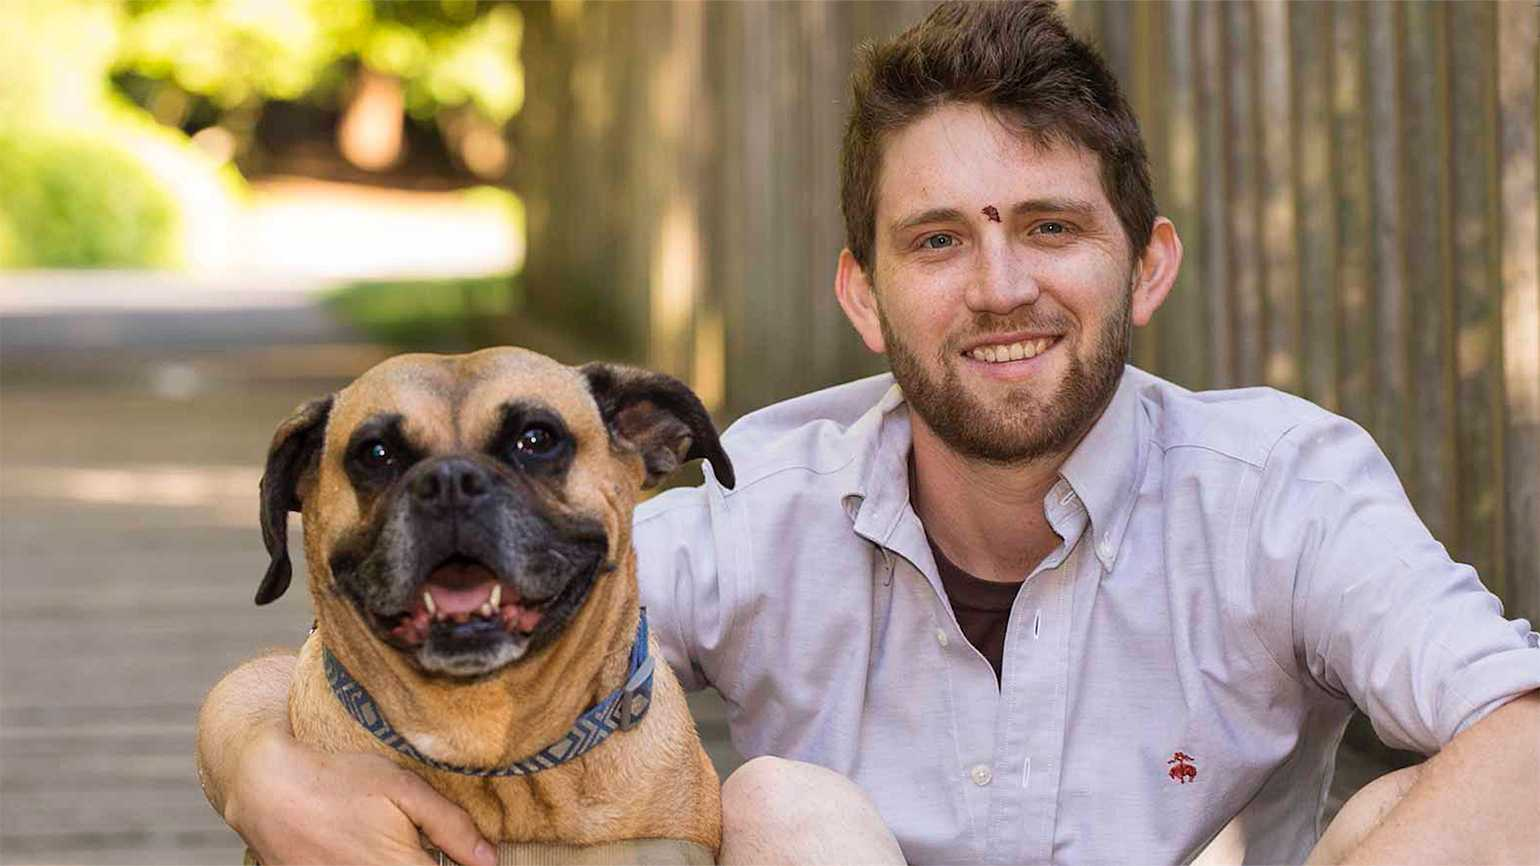 Spencer Roost and his dog, Moon